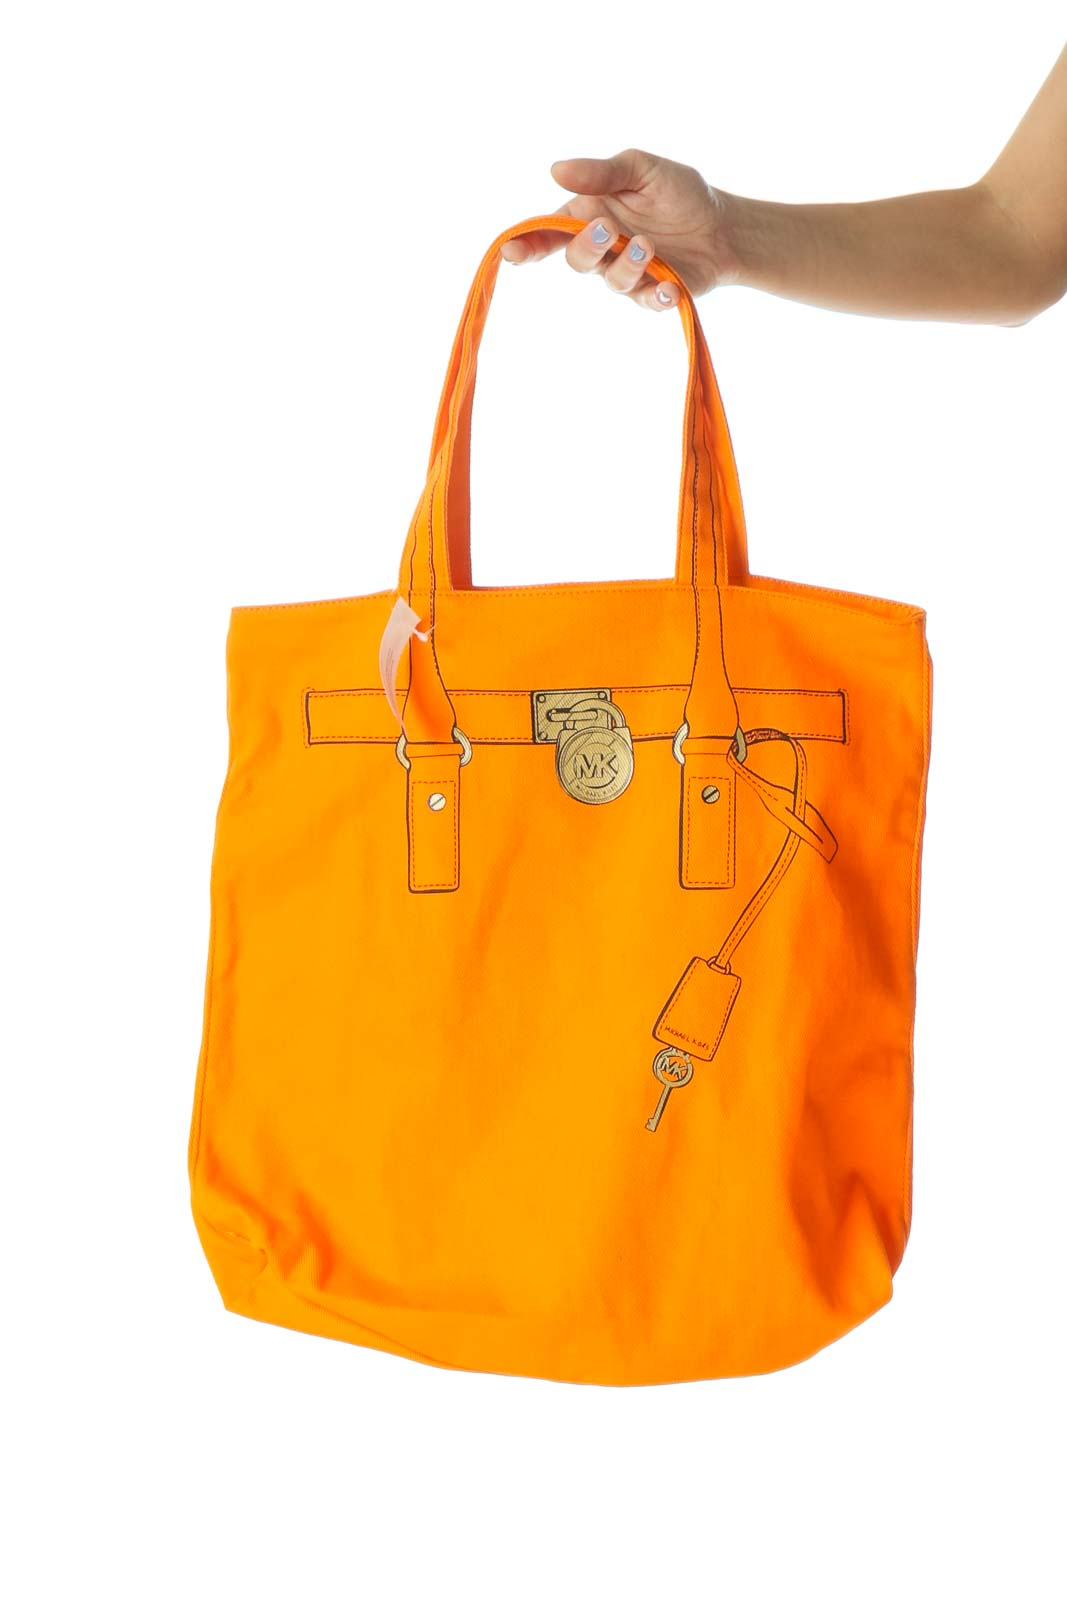 Orange Purse Print Tote Bag